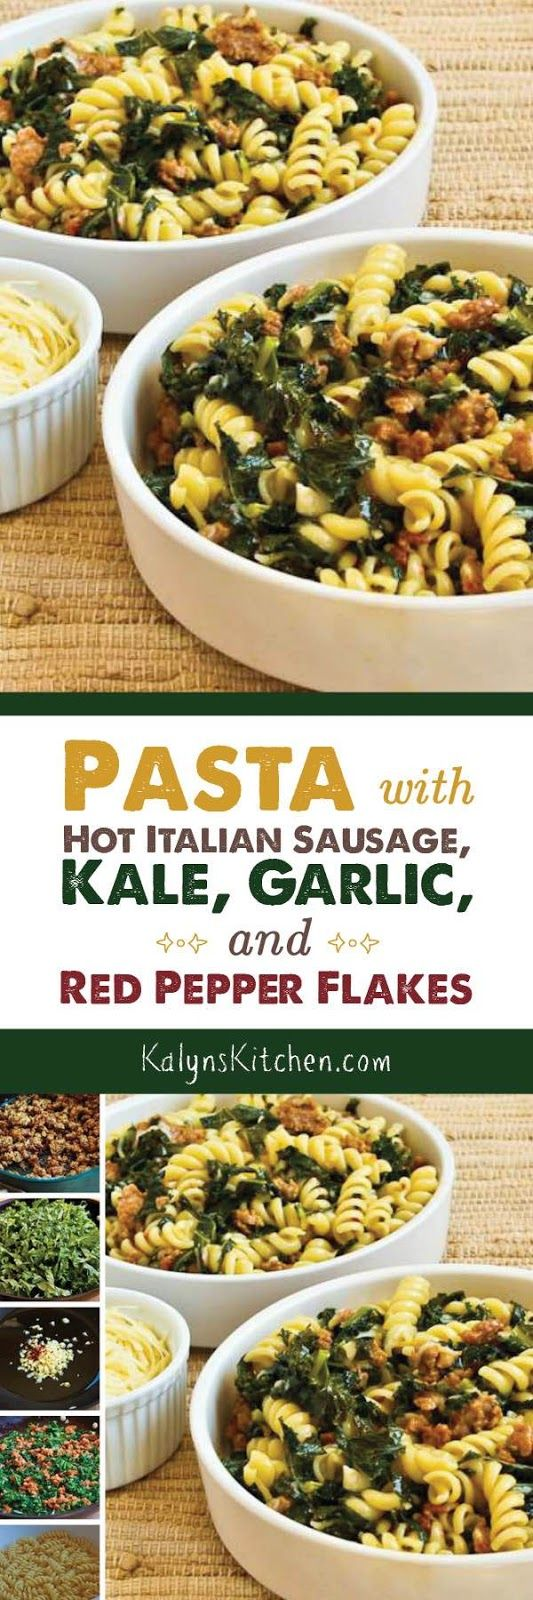 healthy recipes pasta with hot italian sausage kale